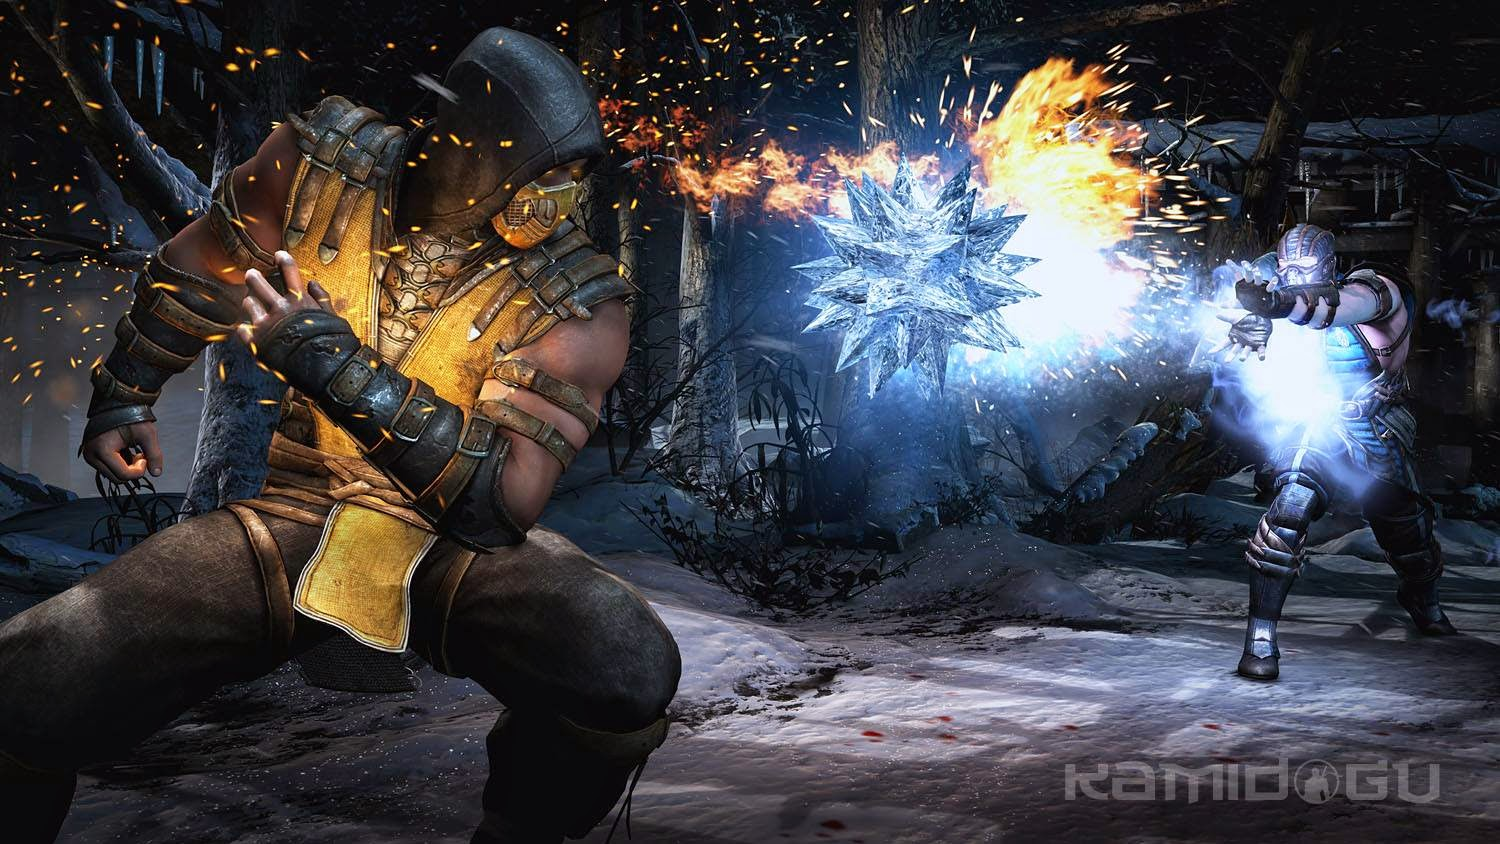 Mortal Kombat Wallpaper Abyss Alpha Coders